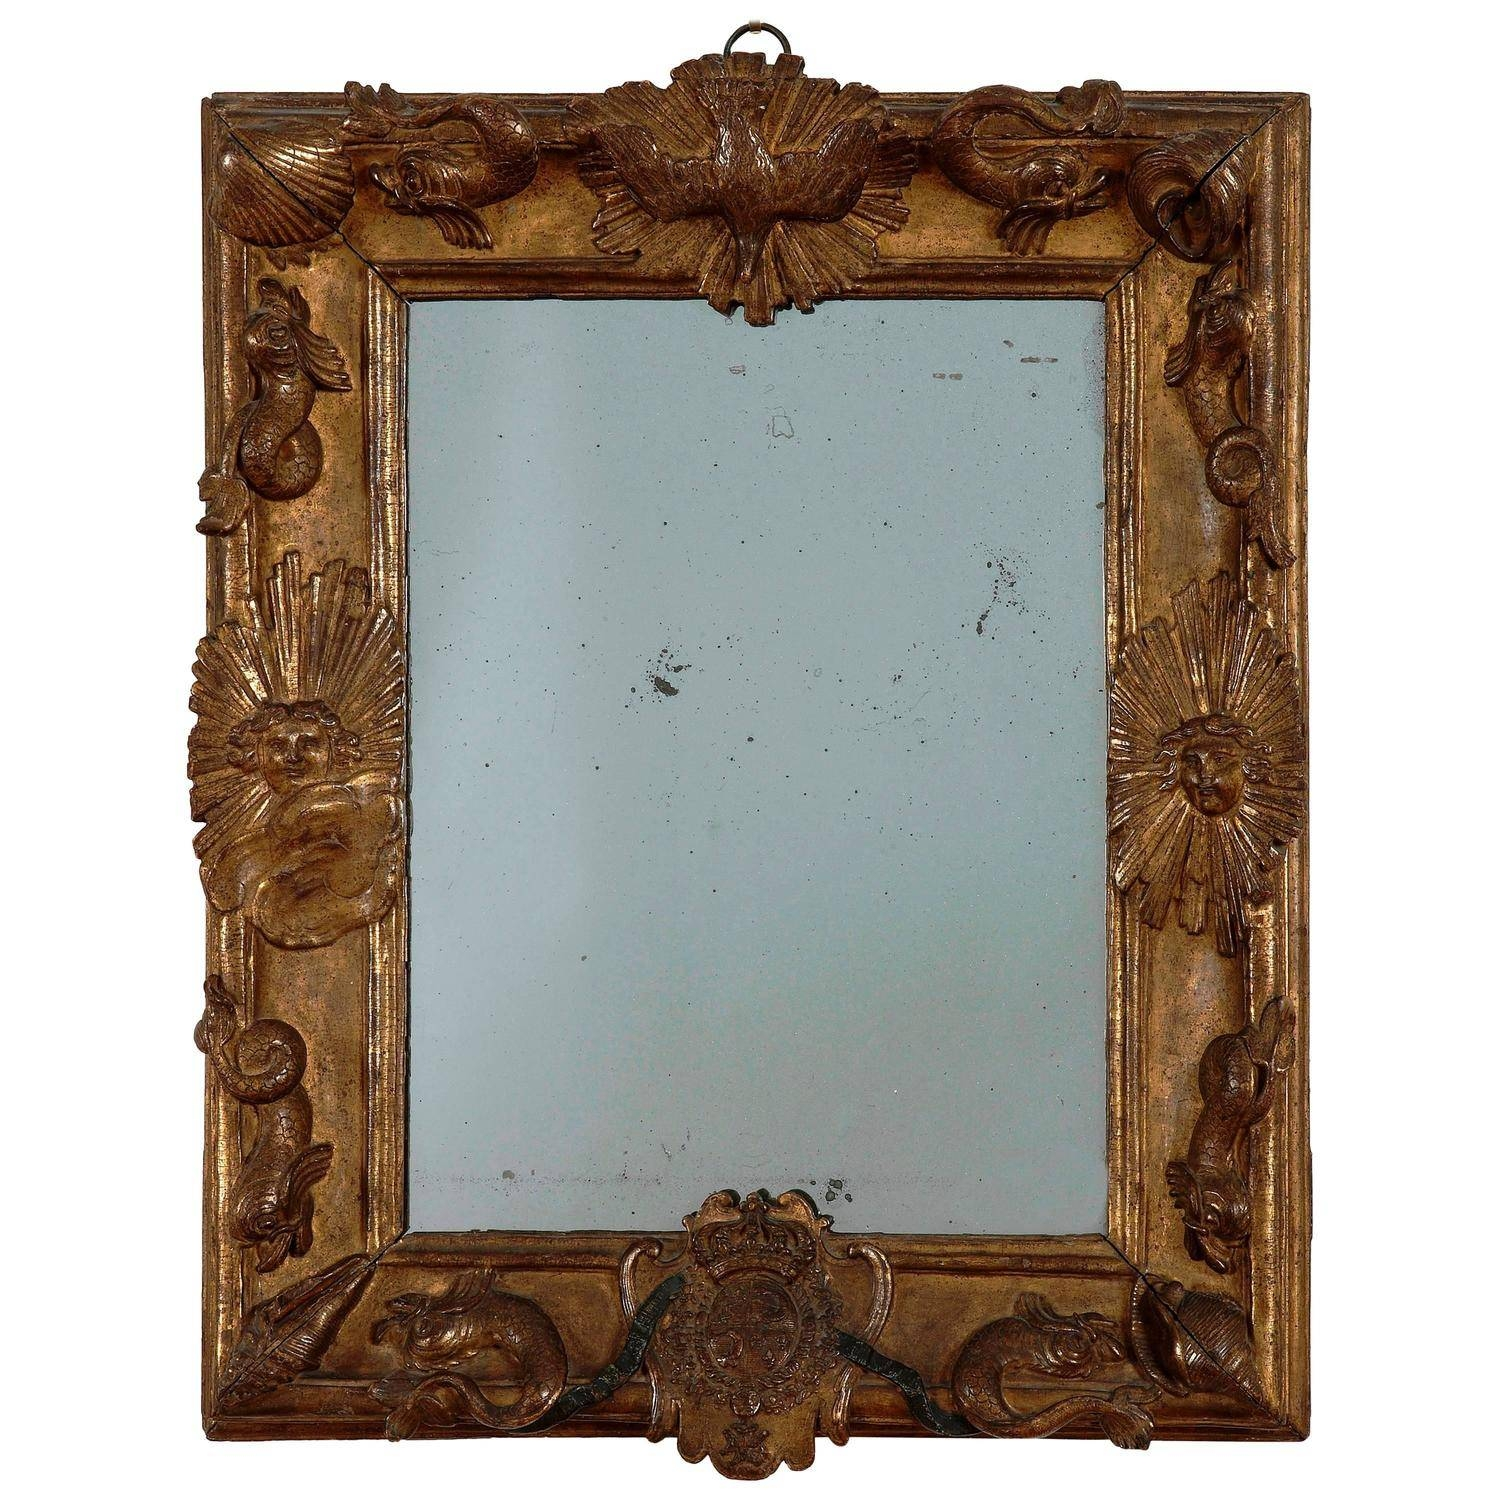 17Th Century Mirrors - 79 For Sale At 1Stdibs with regard to Gilt Framed Mirrors (Image 2 of 25)